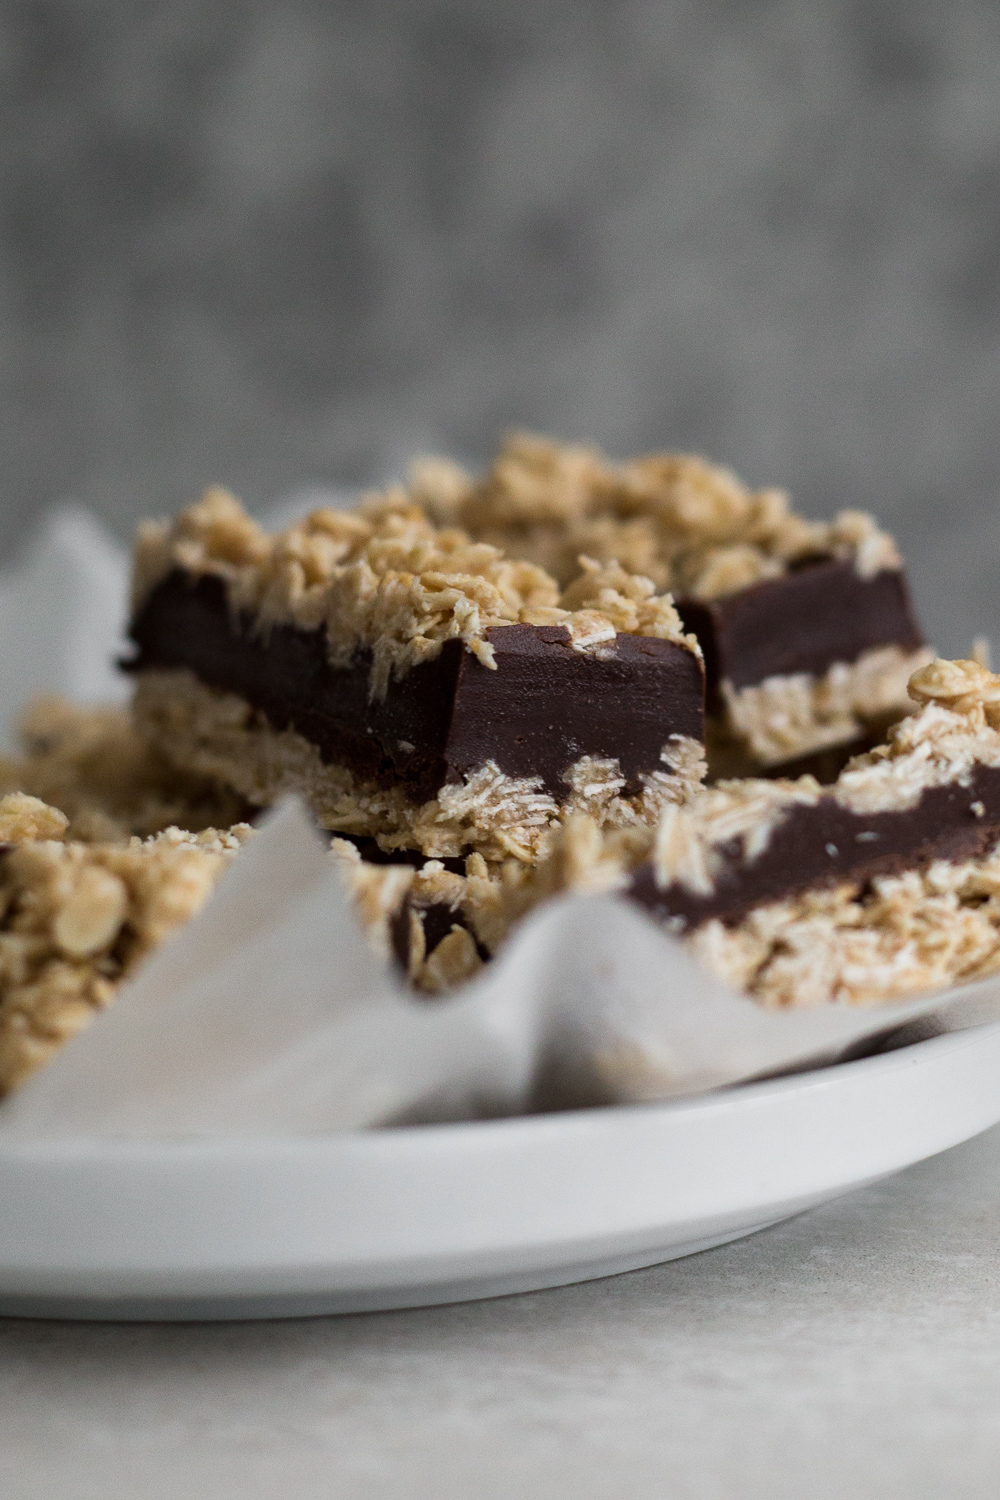 Delicious No-Bake Vegan Freezer Oatmeal Fudge Bars. Oatmeal Crust/Topping with a Chocolate Tahini Fudge Center. Ready in 1 hour. #vegan #oatmeal #fudge #chocolate #nobake #tahini #granola #bars #cookie #fudgebars #oatmealfudgebars #simple #freezer #healthy